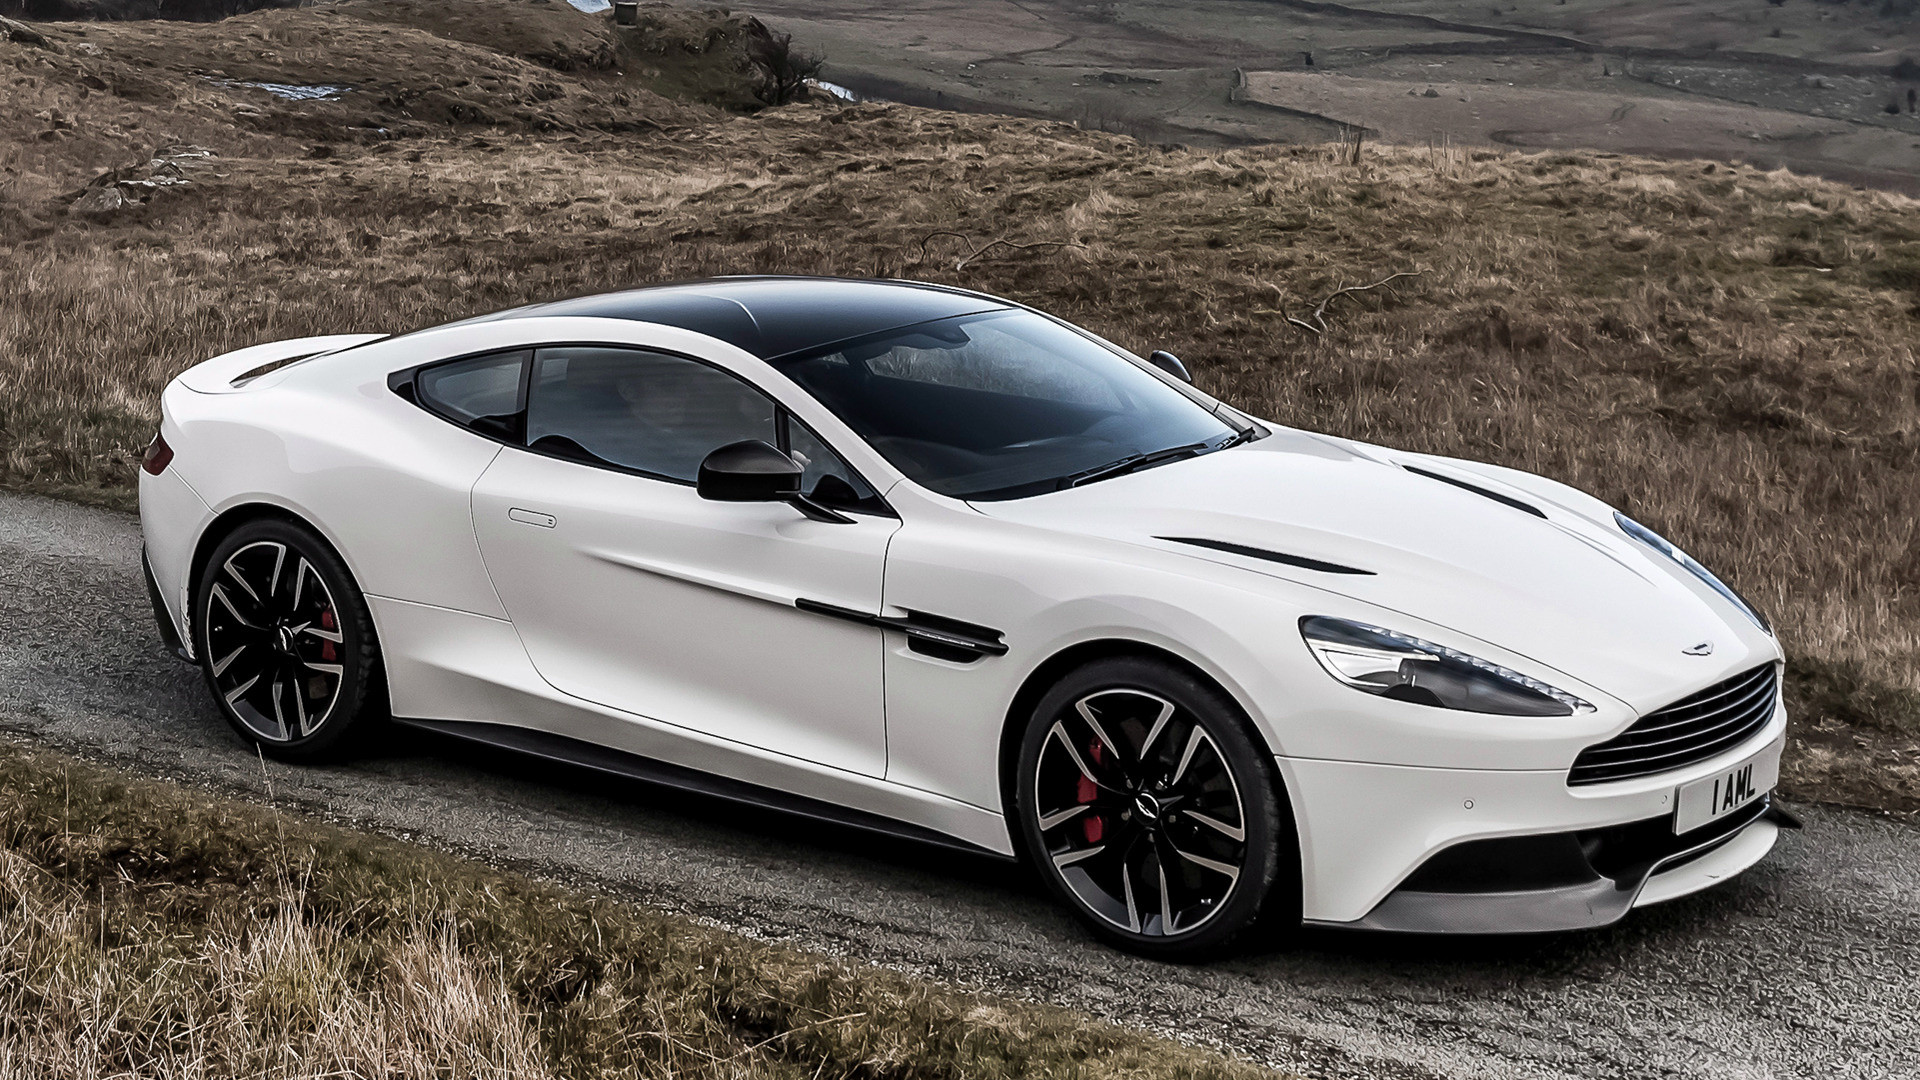 Aston Martin Vanquish 2018 Wallpaper (62+ Images